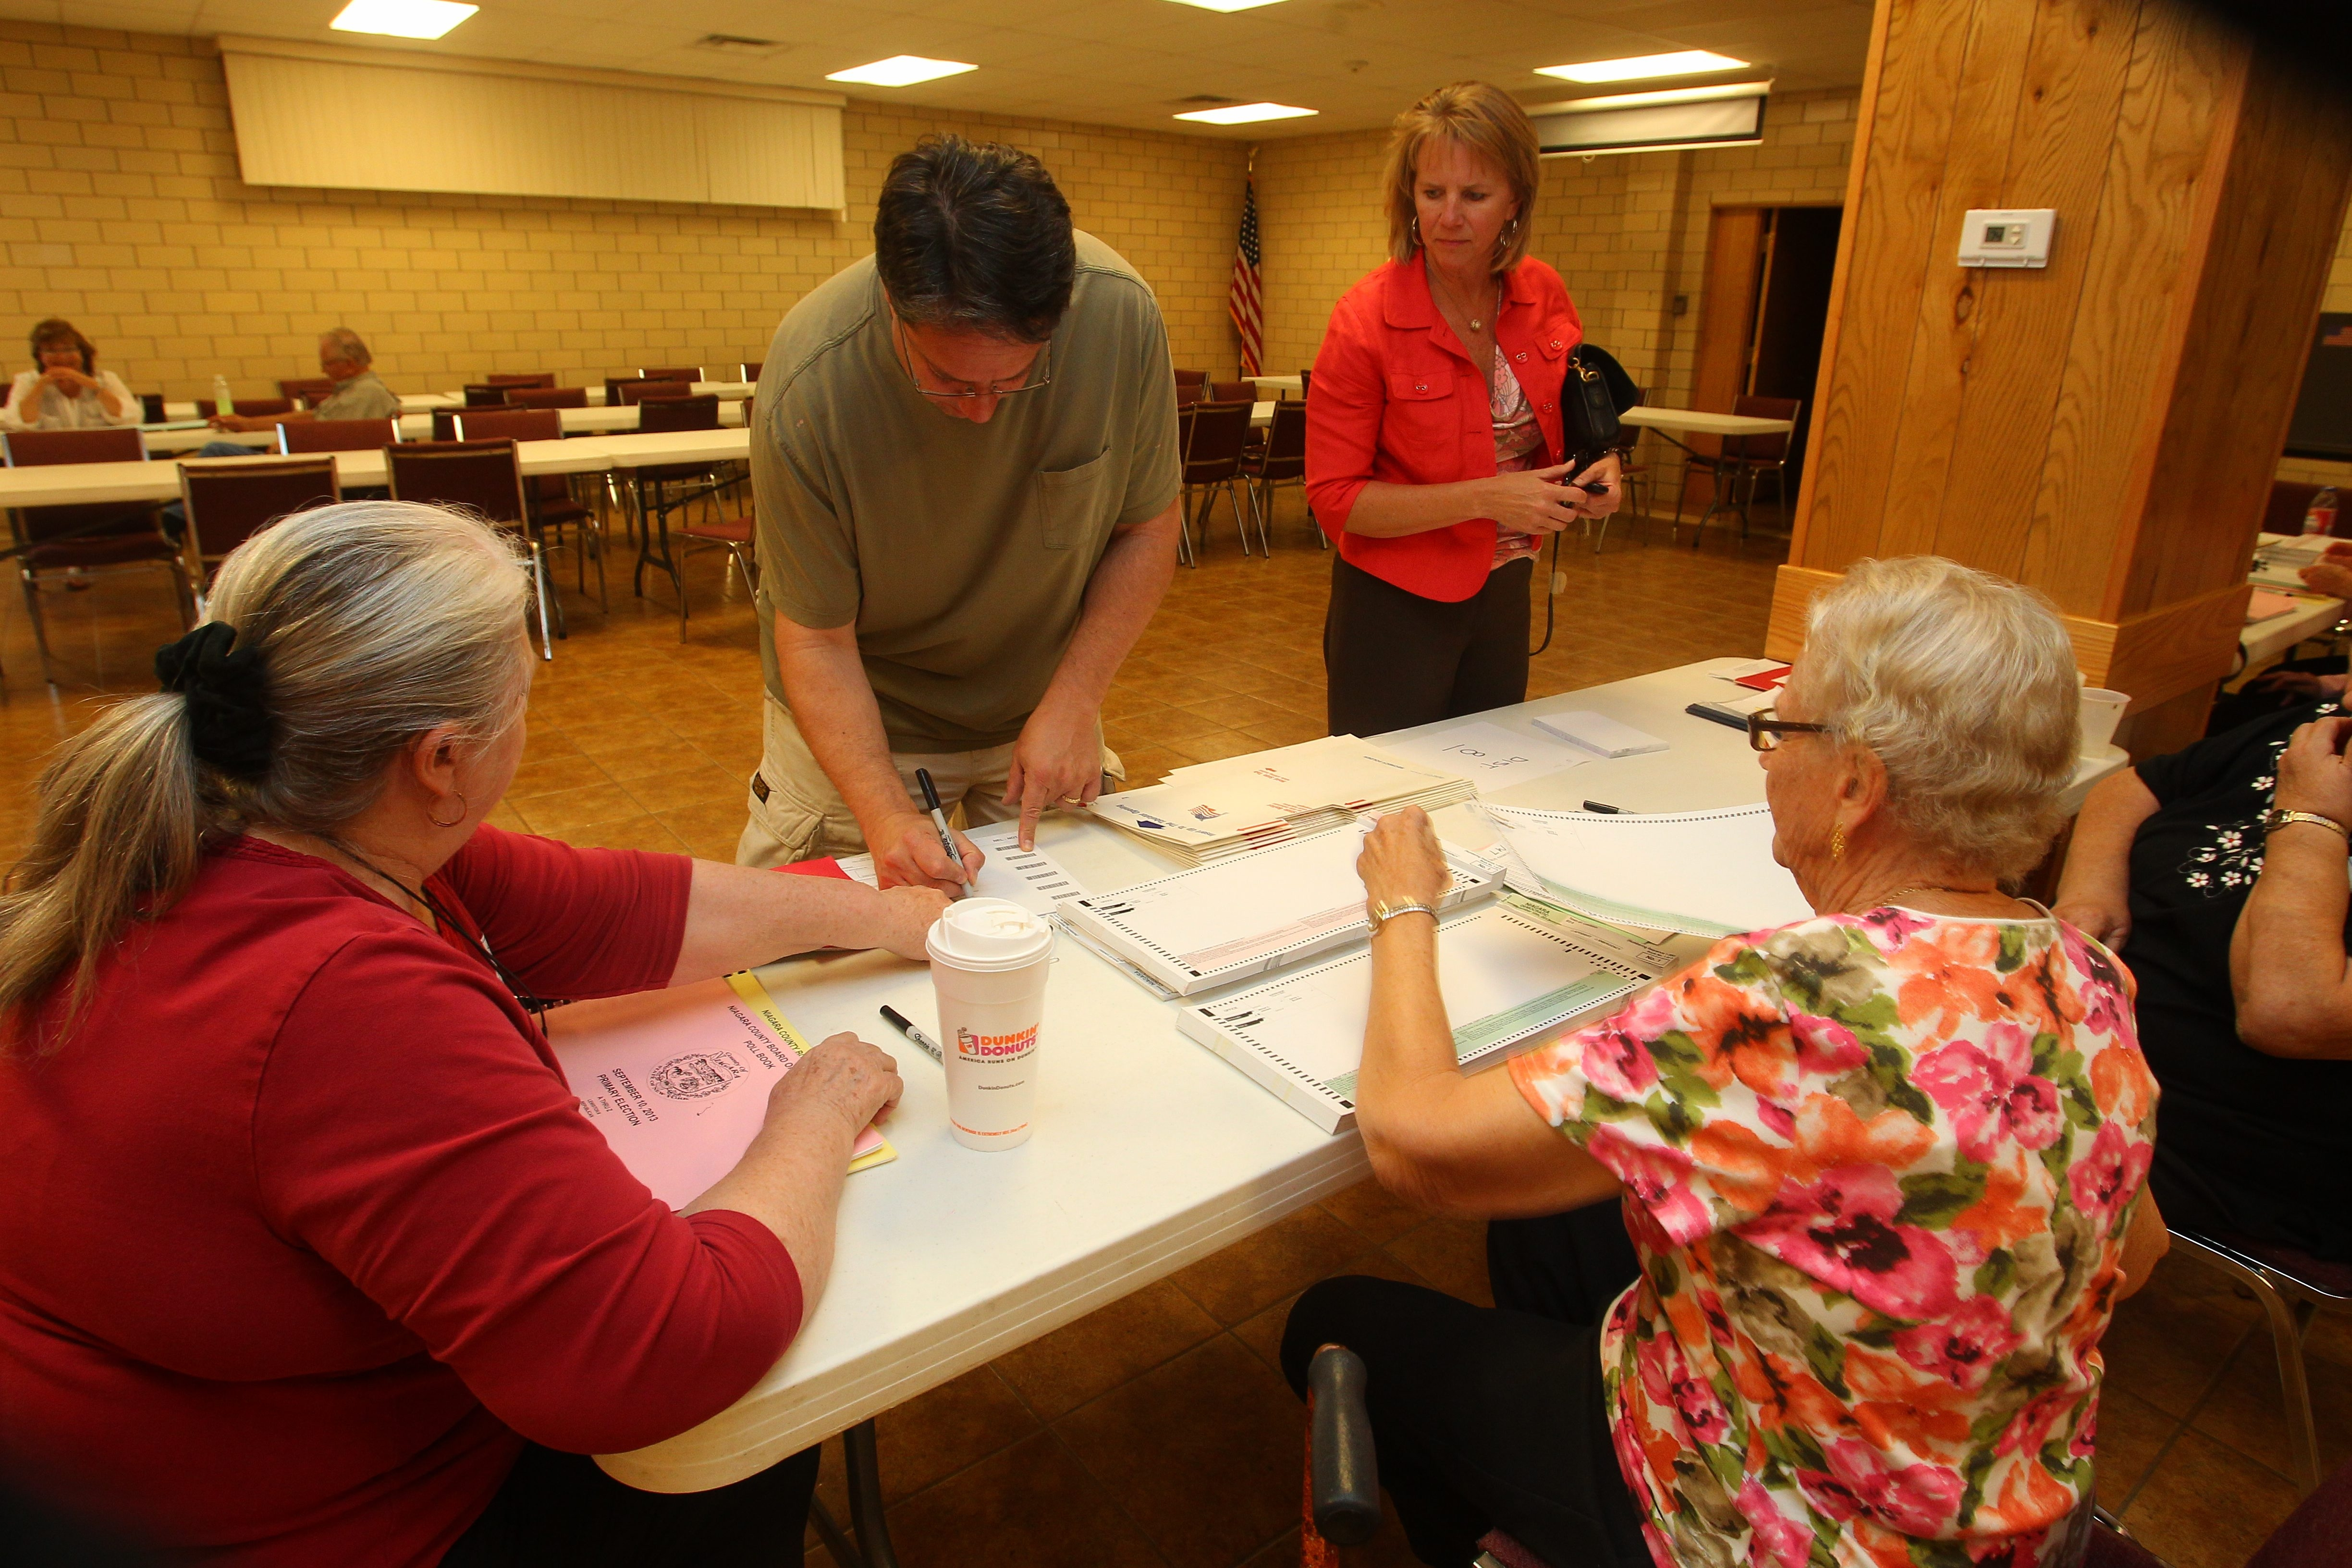 Election inspectors Virginia Boone, left, and Elaine Pfohl assist Leo Notaro and Barbara Walck at Town of Niagara polling place.